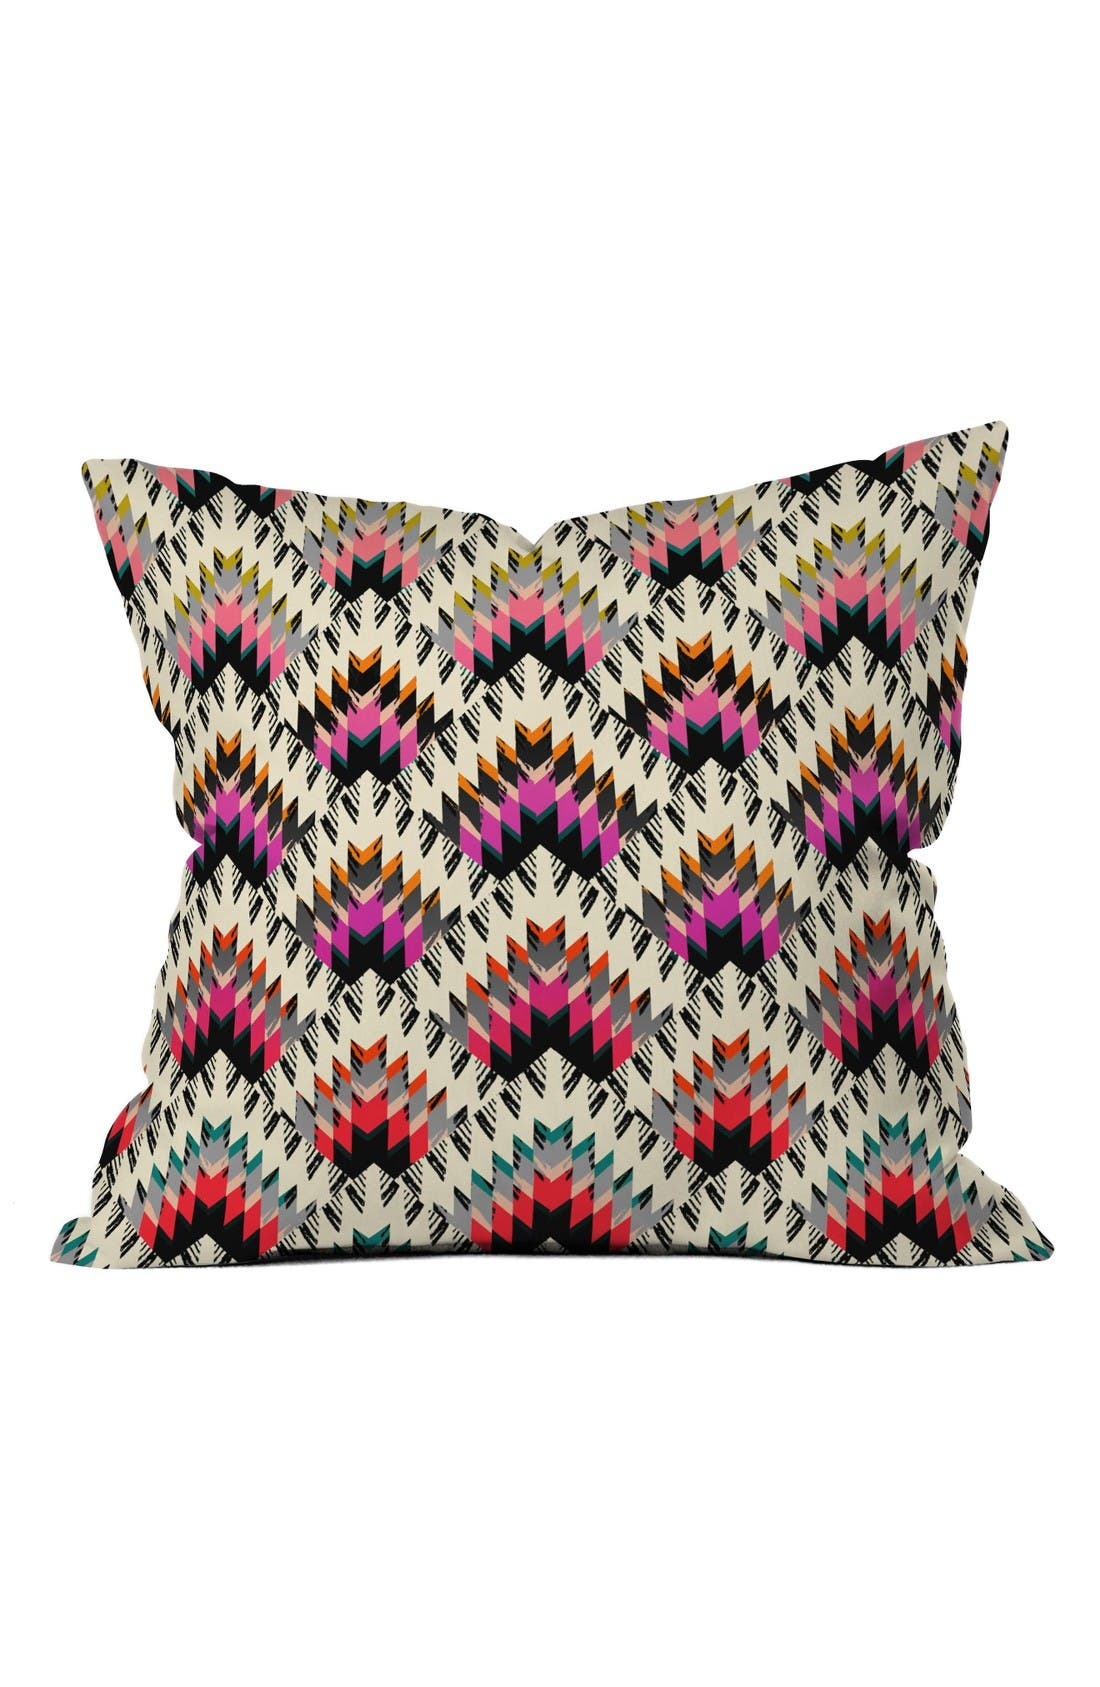 Main Image - Deny Designs State Peaks Pillow